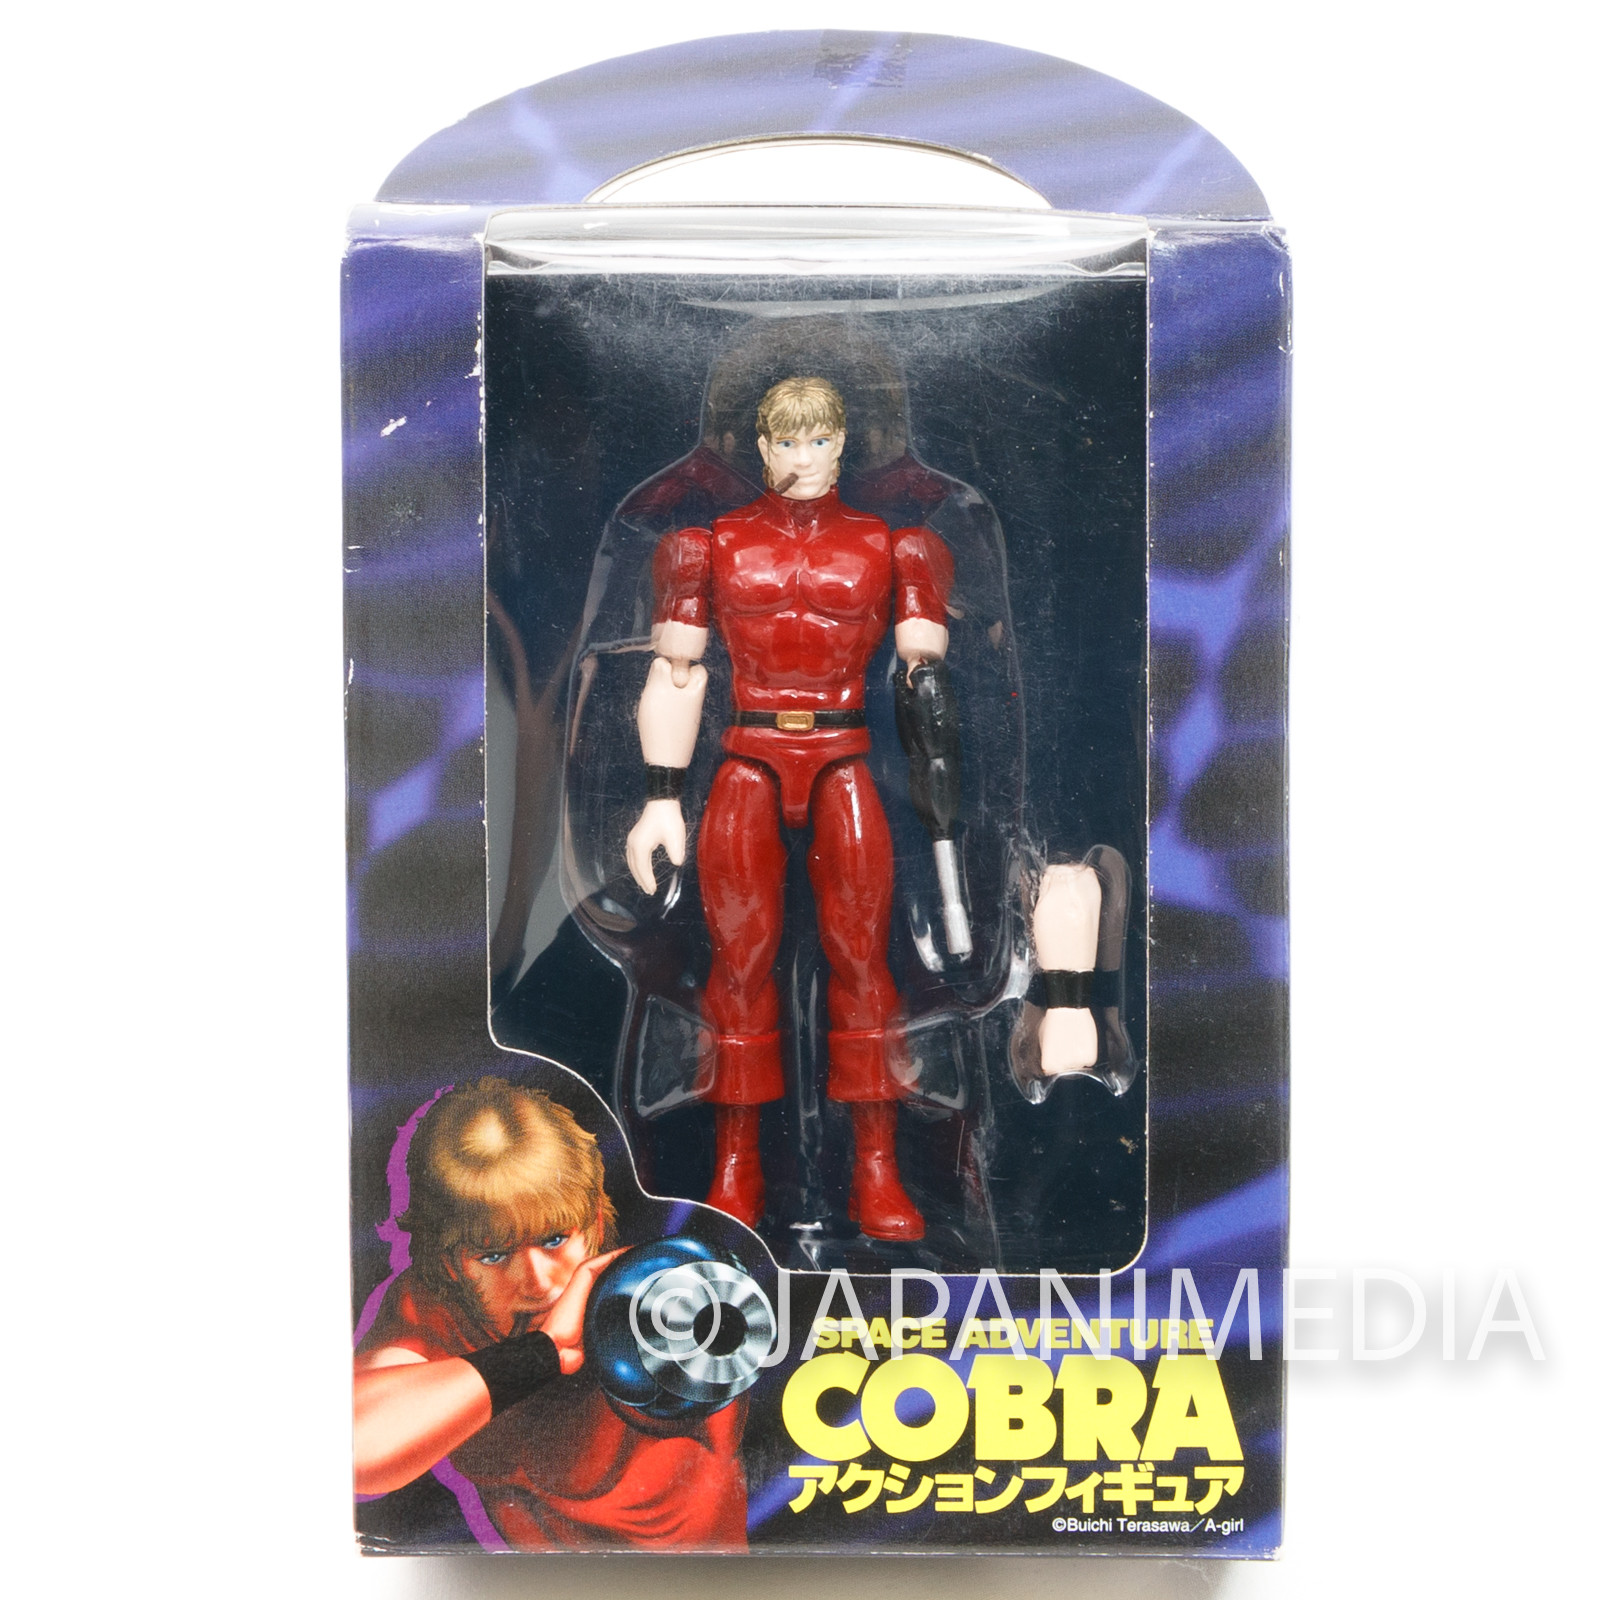 Space Adventure Cobra Action Figure Banpresto JAPAN ANIME MANGA